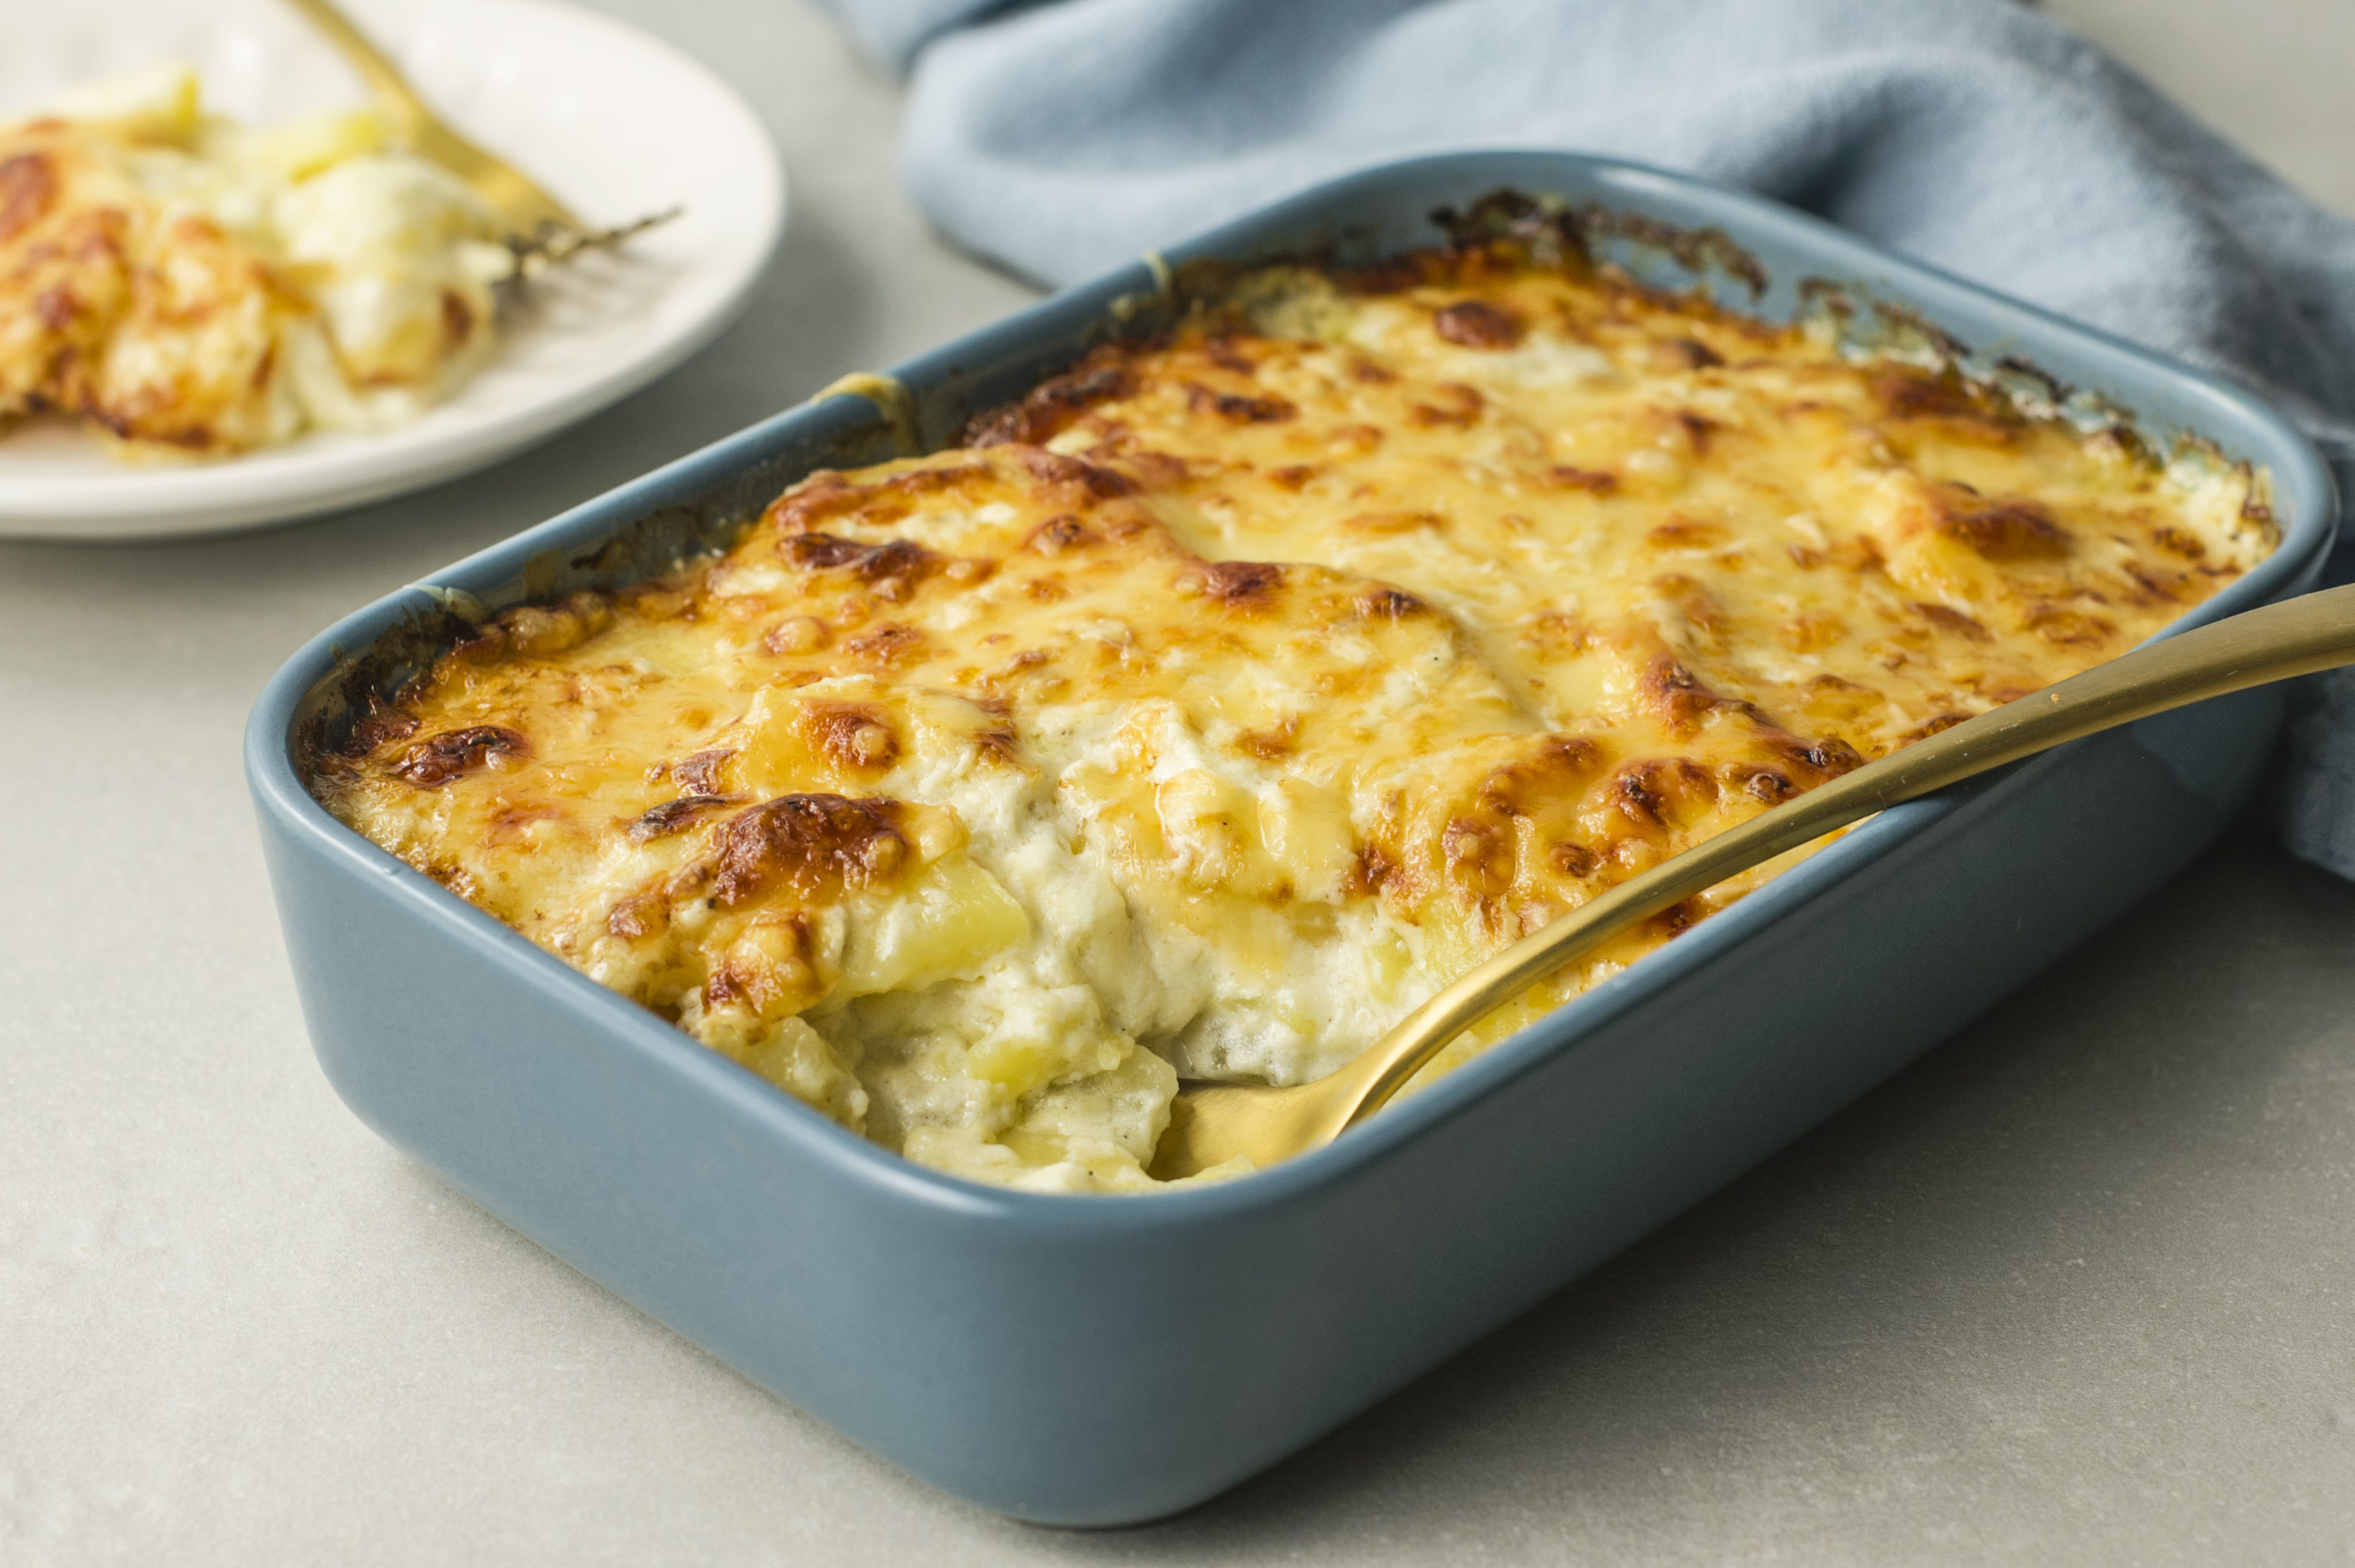 The Ultimate French Comfort Food Must Be a Gratin Dauphinois